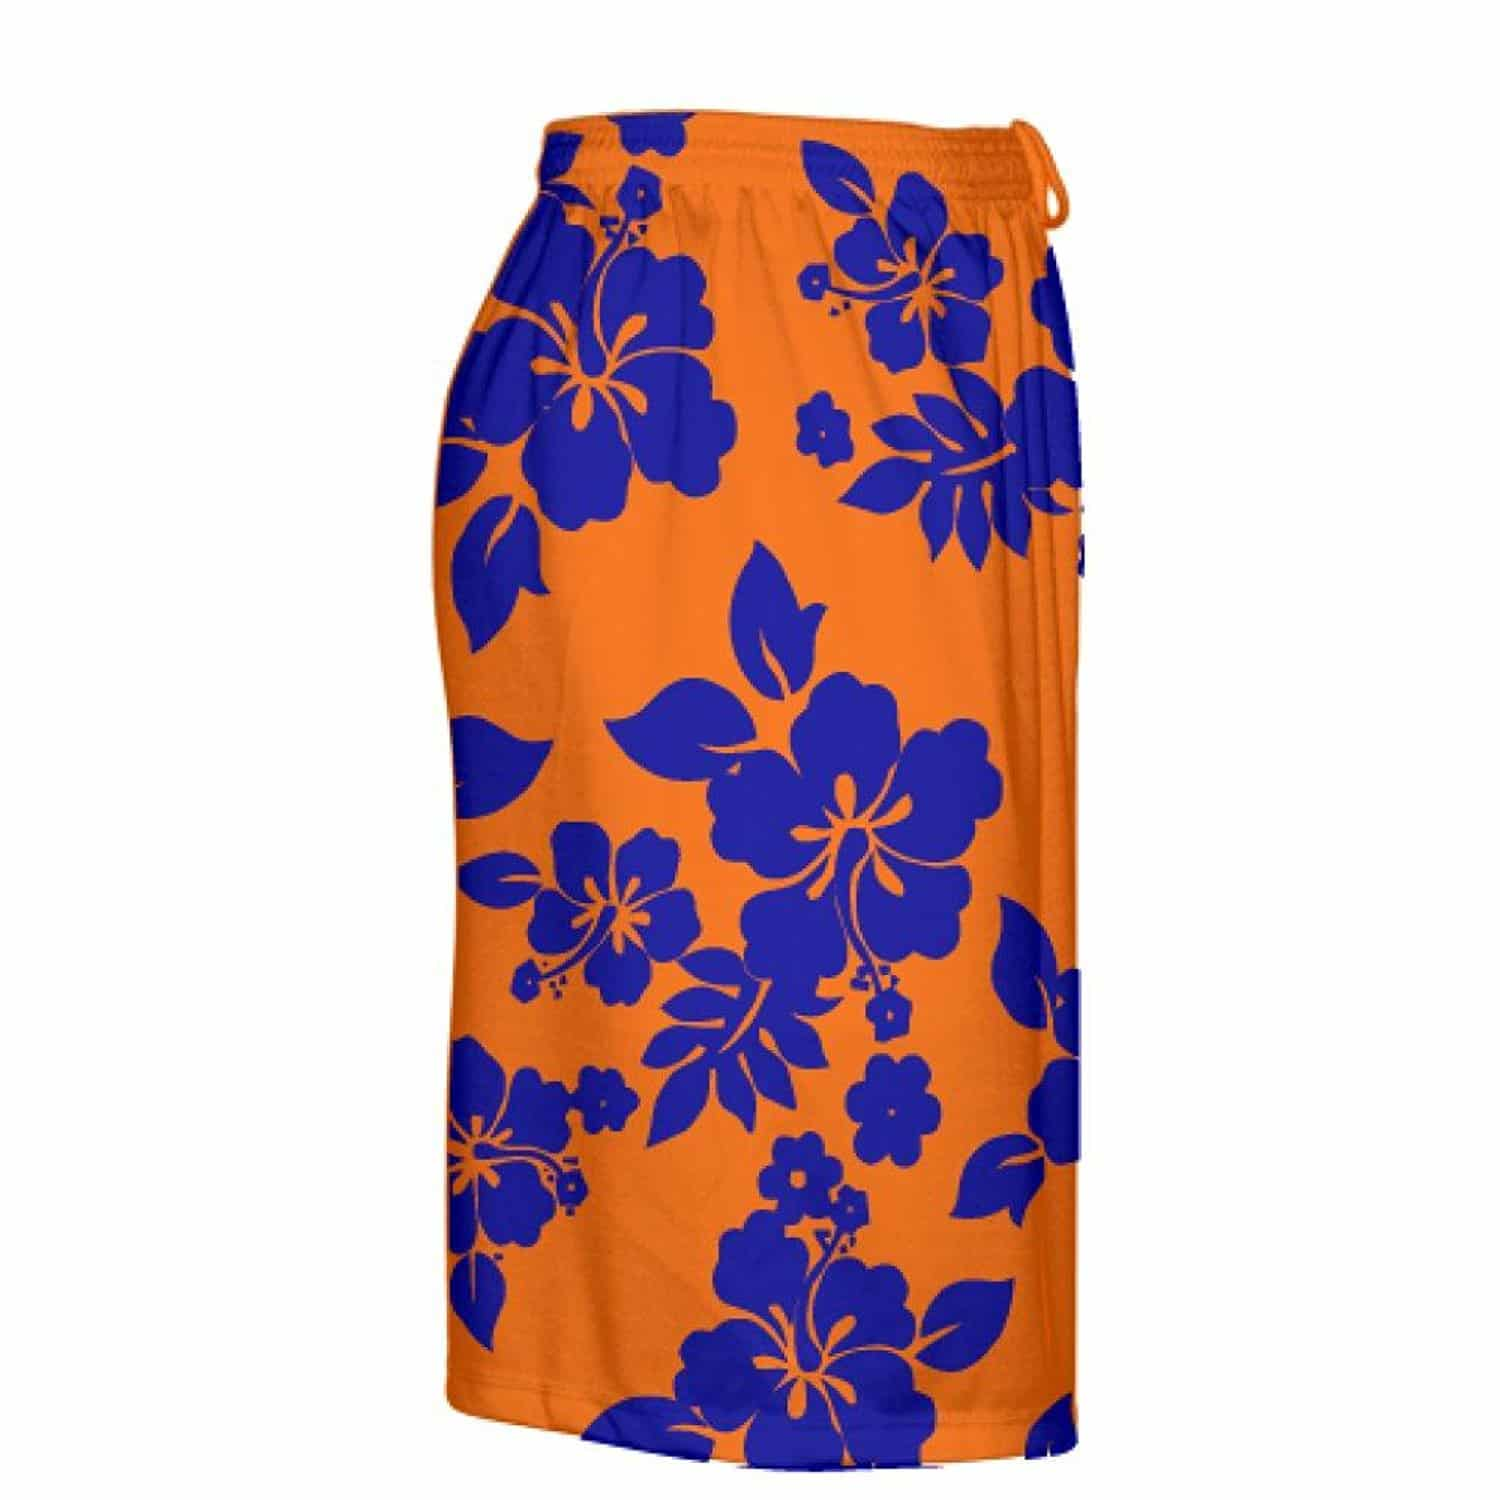 LightningWear-Blue-Orange-Hawaiian-Shorts-Accent-B0797BLZ82-4